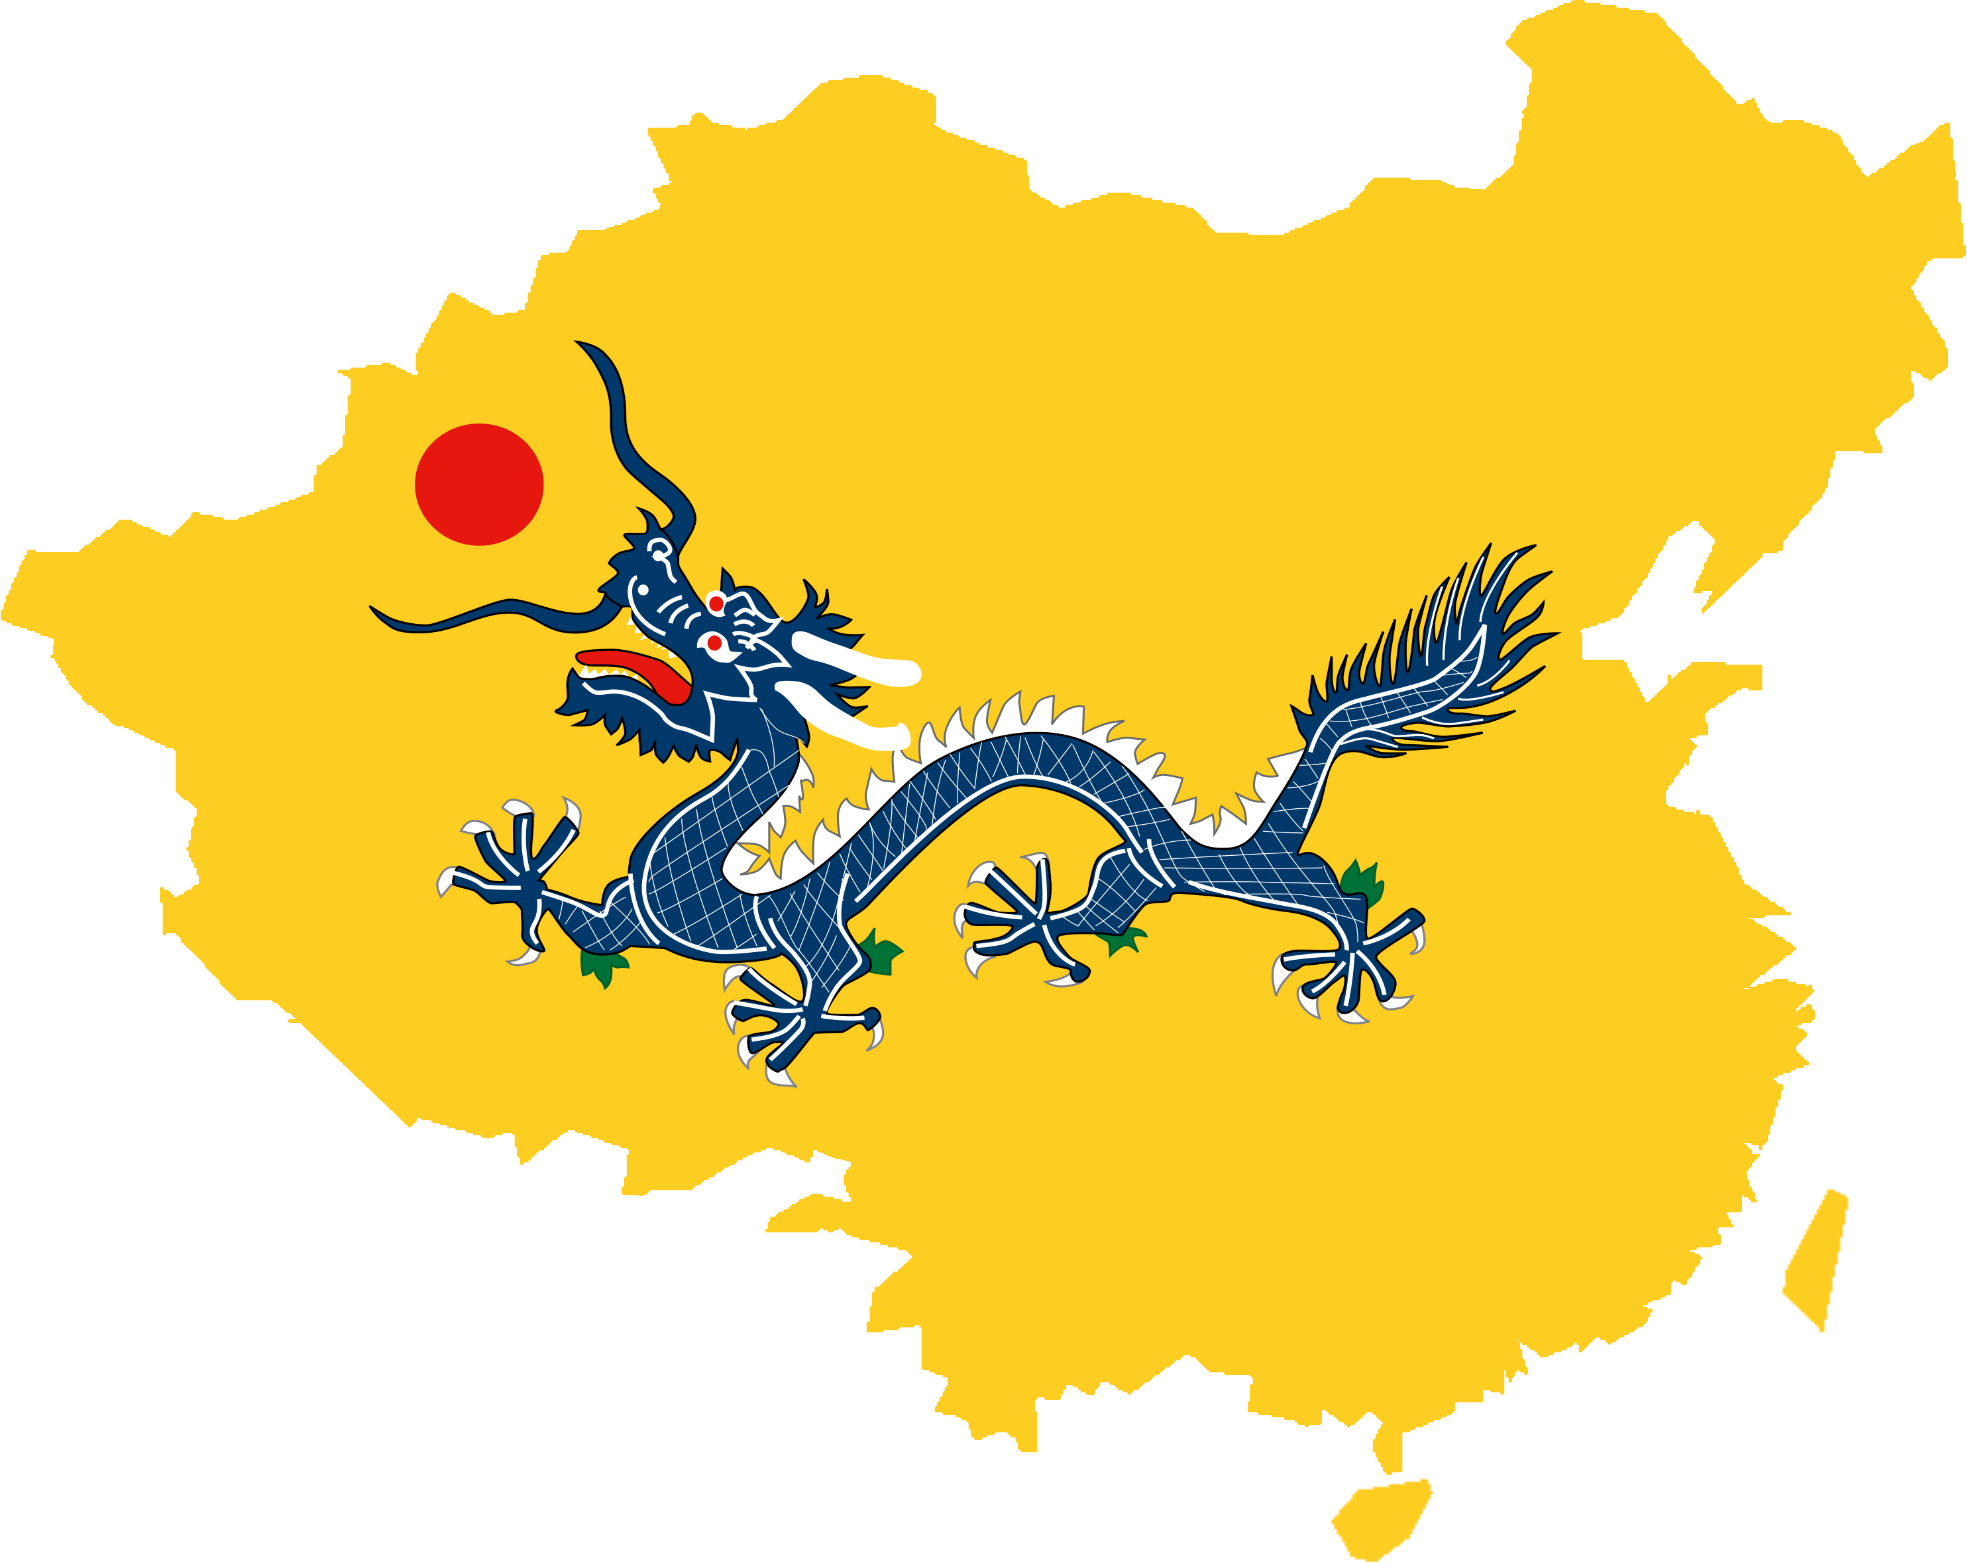 File:Flag map of Qing Dynasty (1644 - 1912).png ...